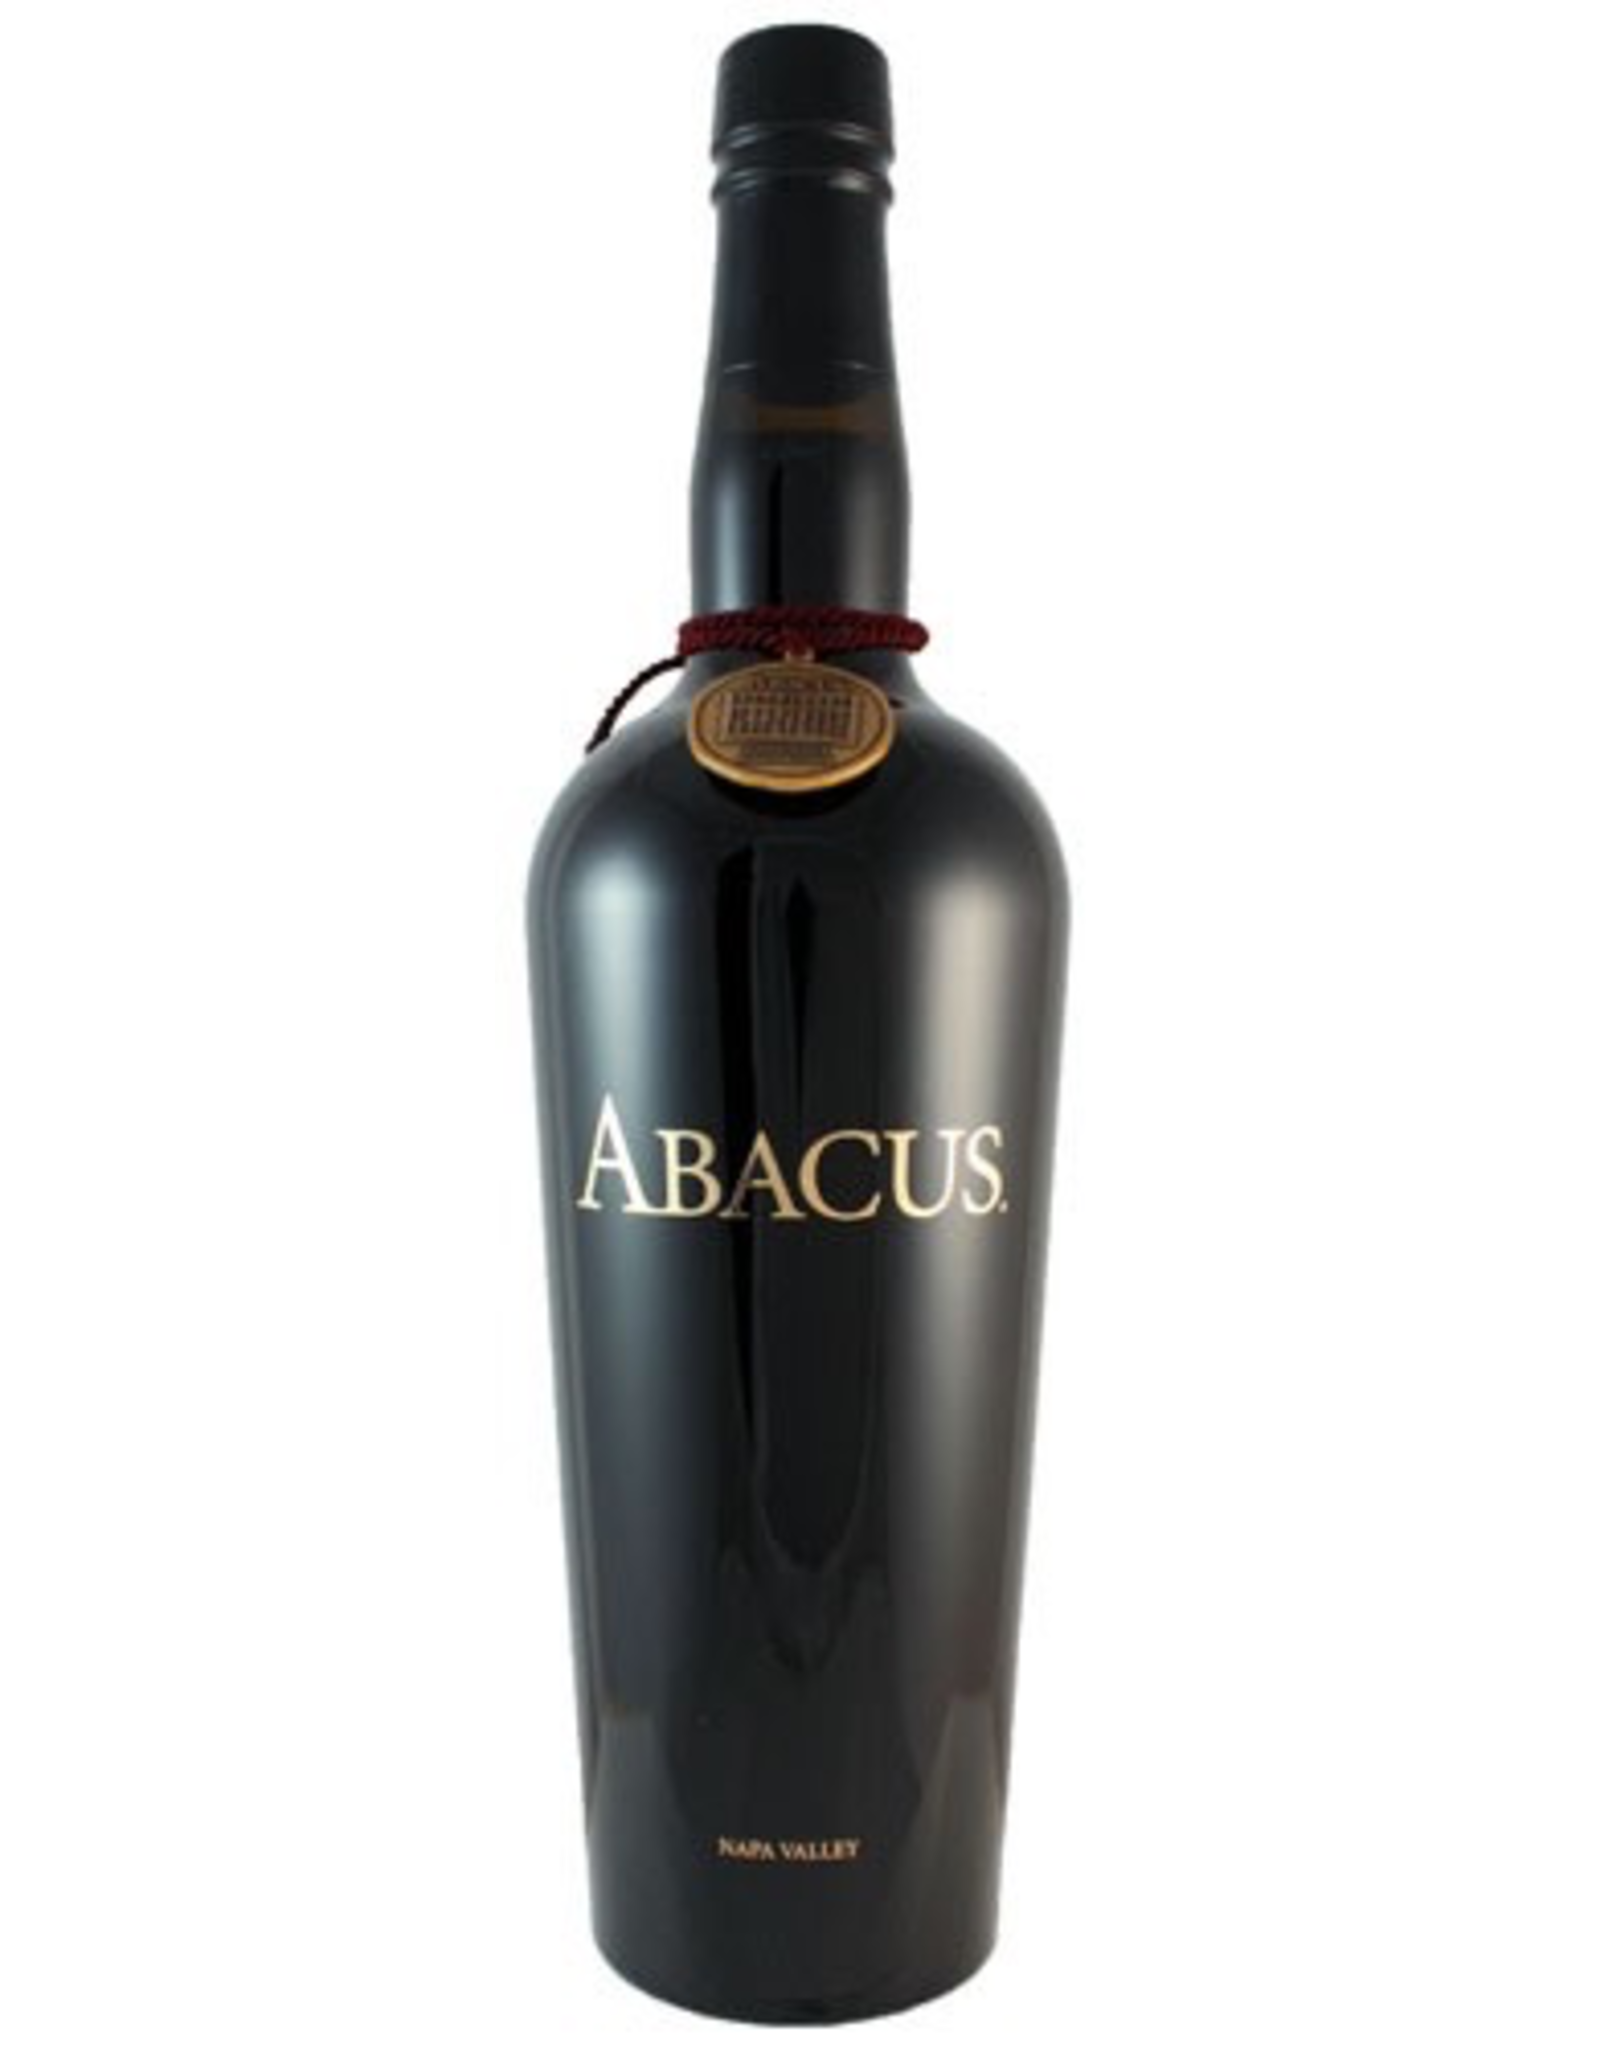 Red Wine NV, ZD Wines ABACUS XIX 1992 - 2016 19th Bottling 25th Anniversary, Cabernet Sauvignon Solera Style, Rutherford, Napa Valley, California,14.5% Alc, CTnr